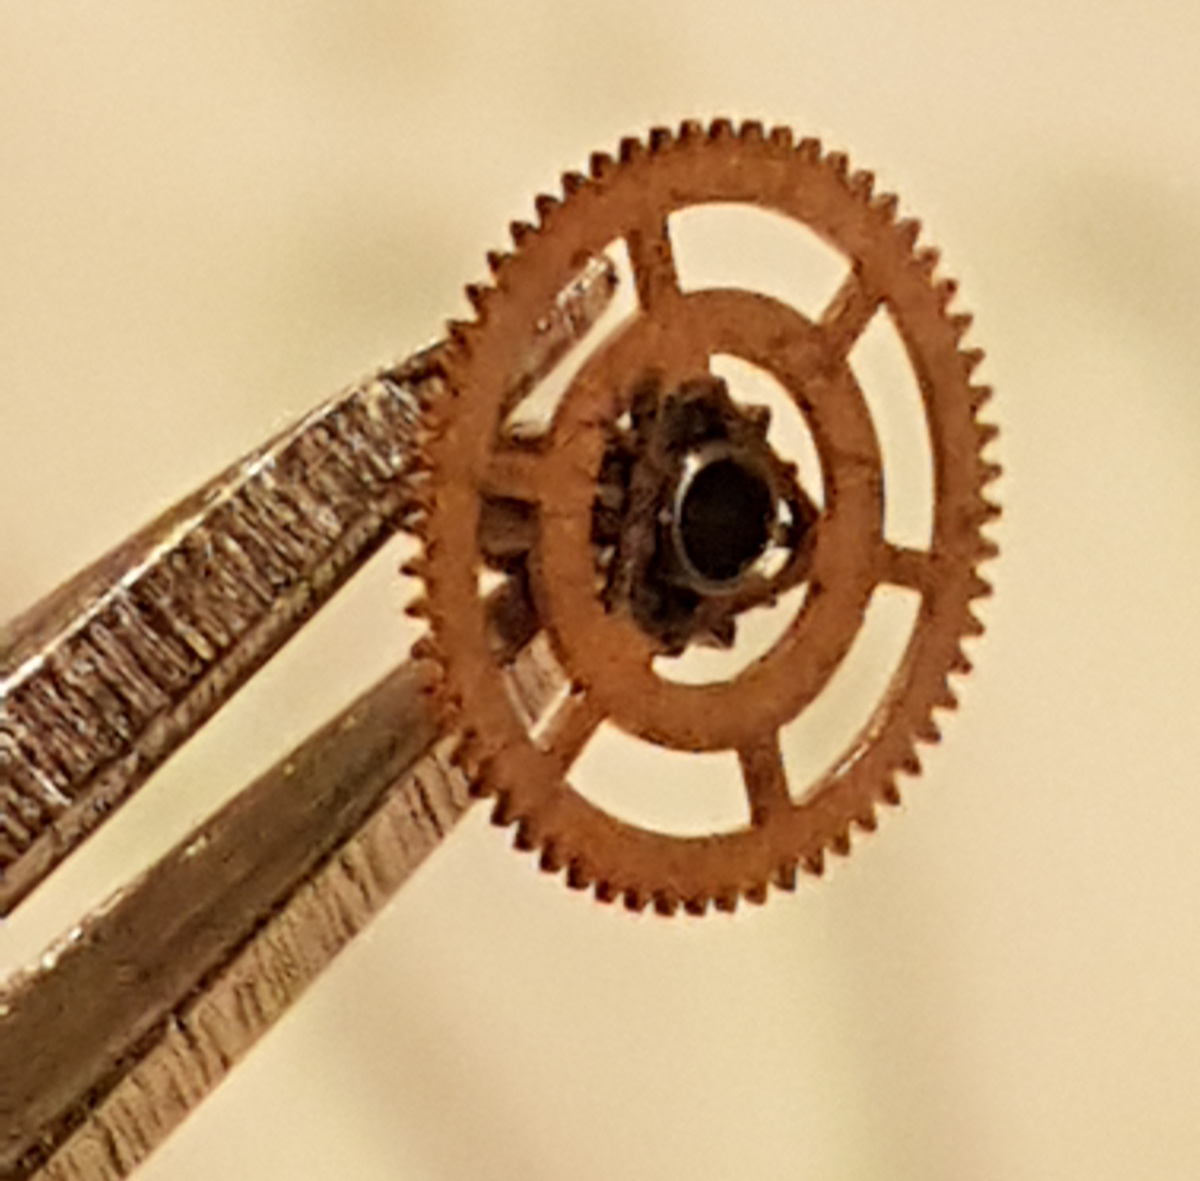 Reassembled cannon pinion and gear